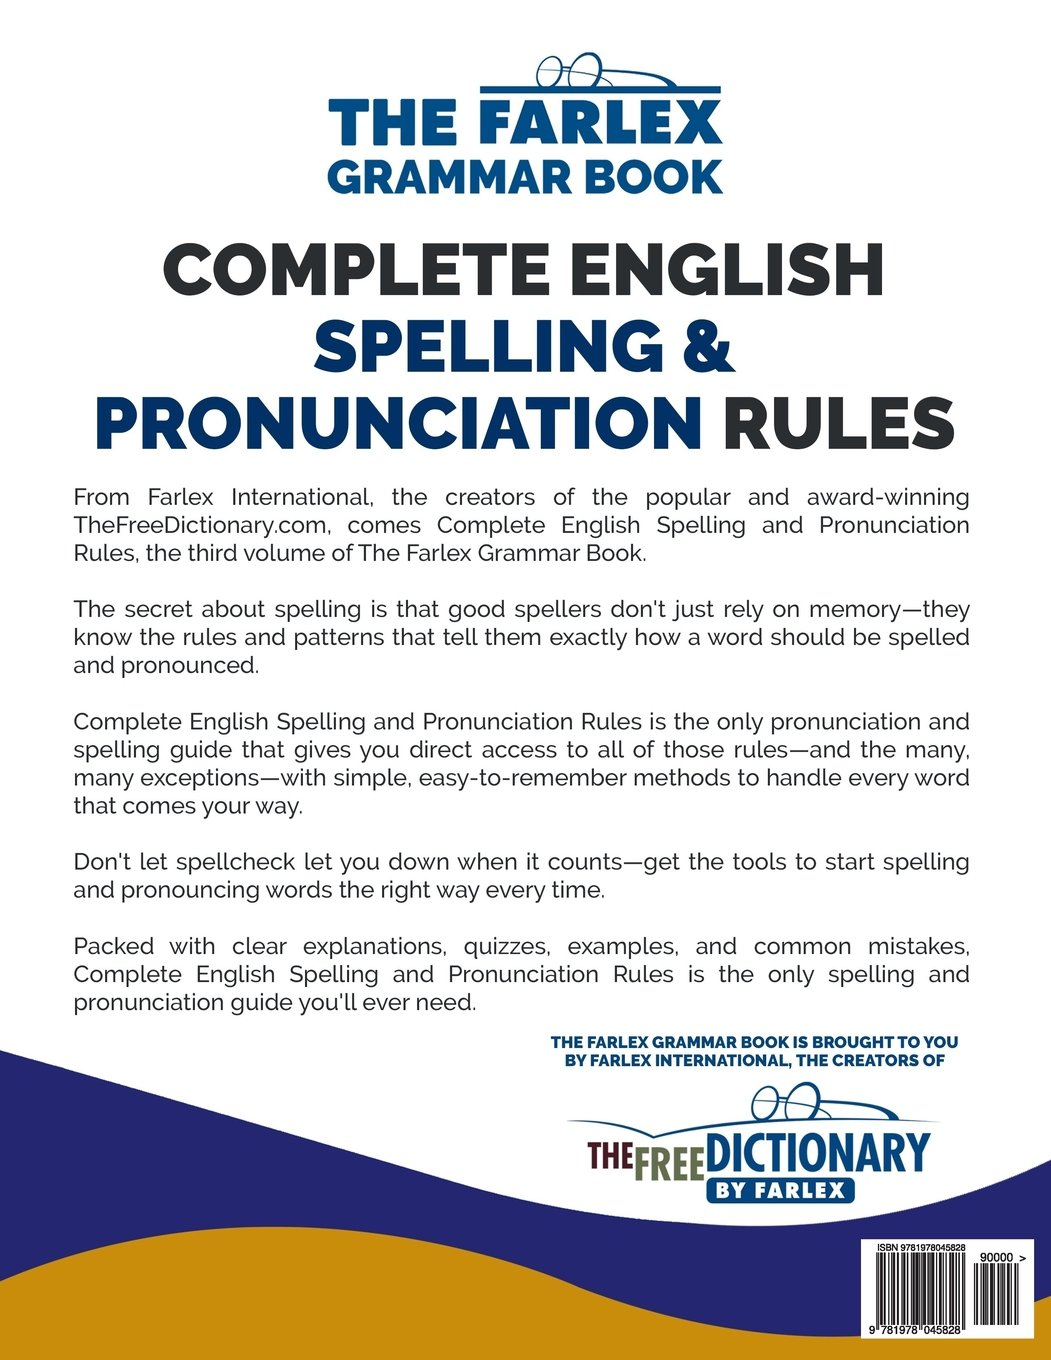 Complete English Spelling and Pronunciation Rules: Simple